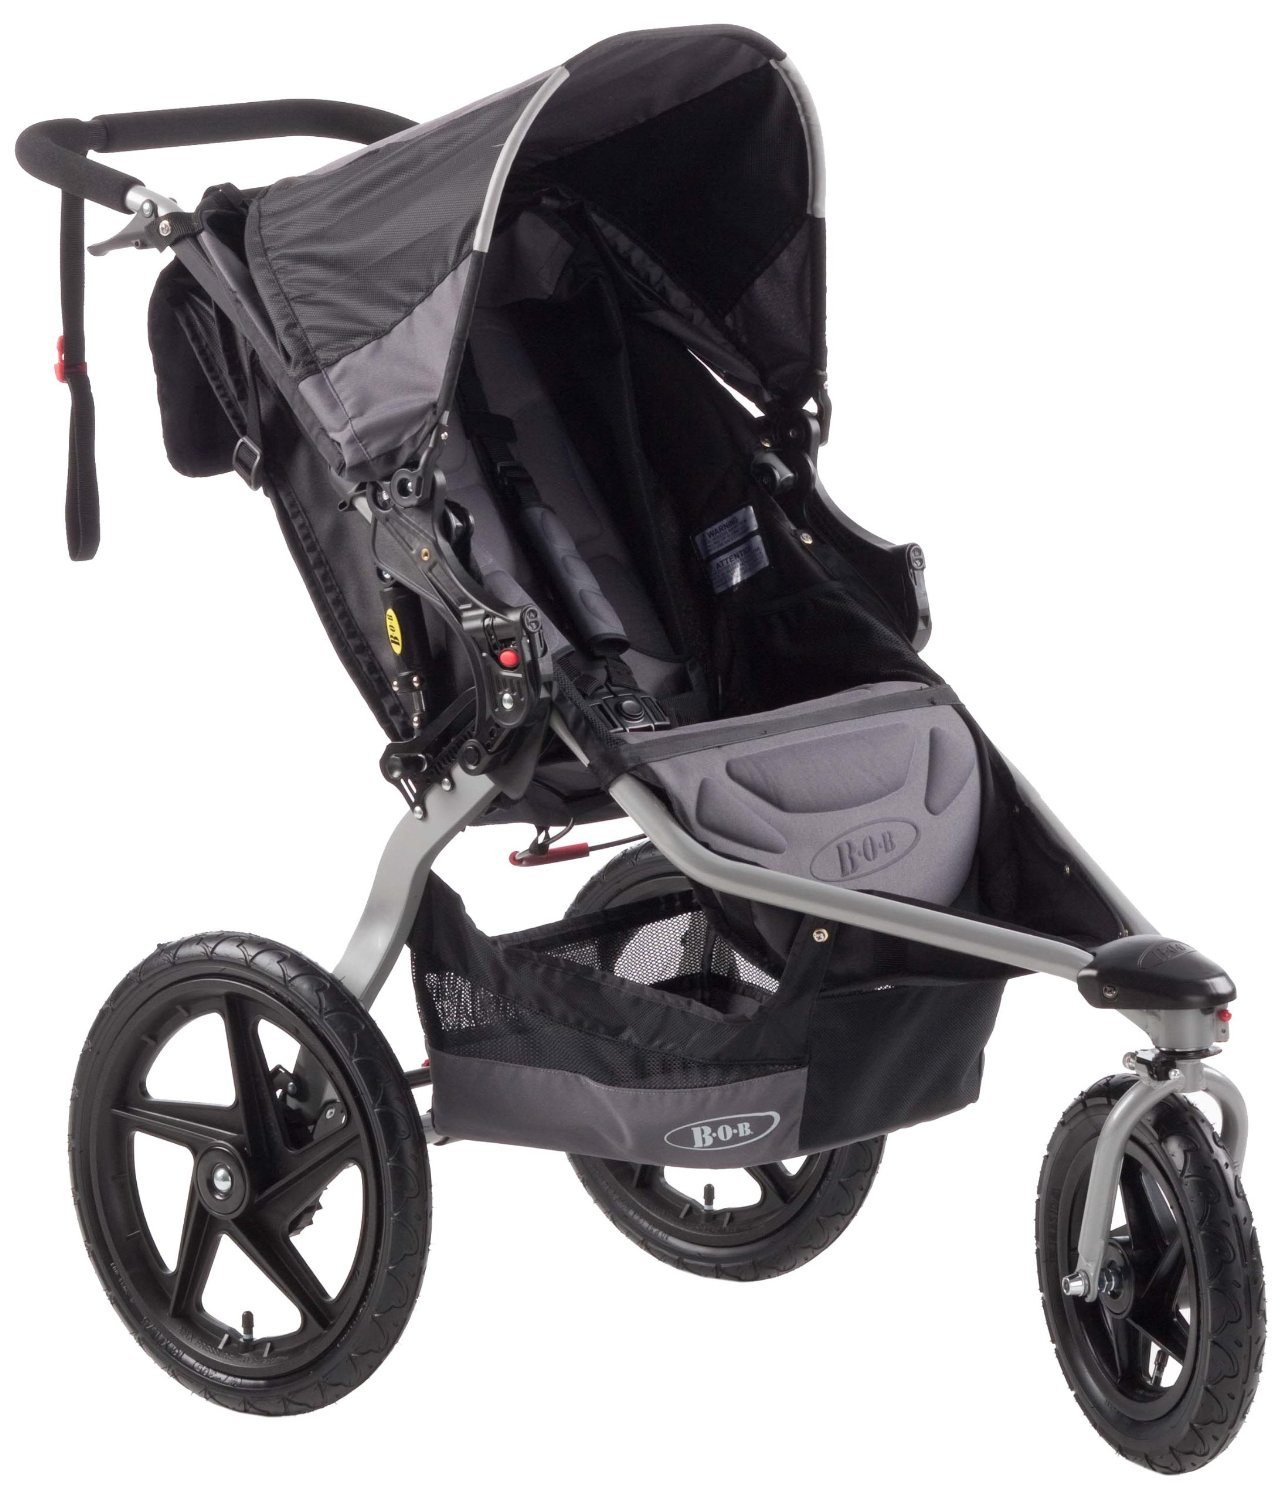 Top 10 Best Baby Strollers 2017 - Baby Strollers Reviews